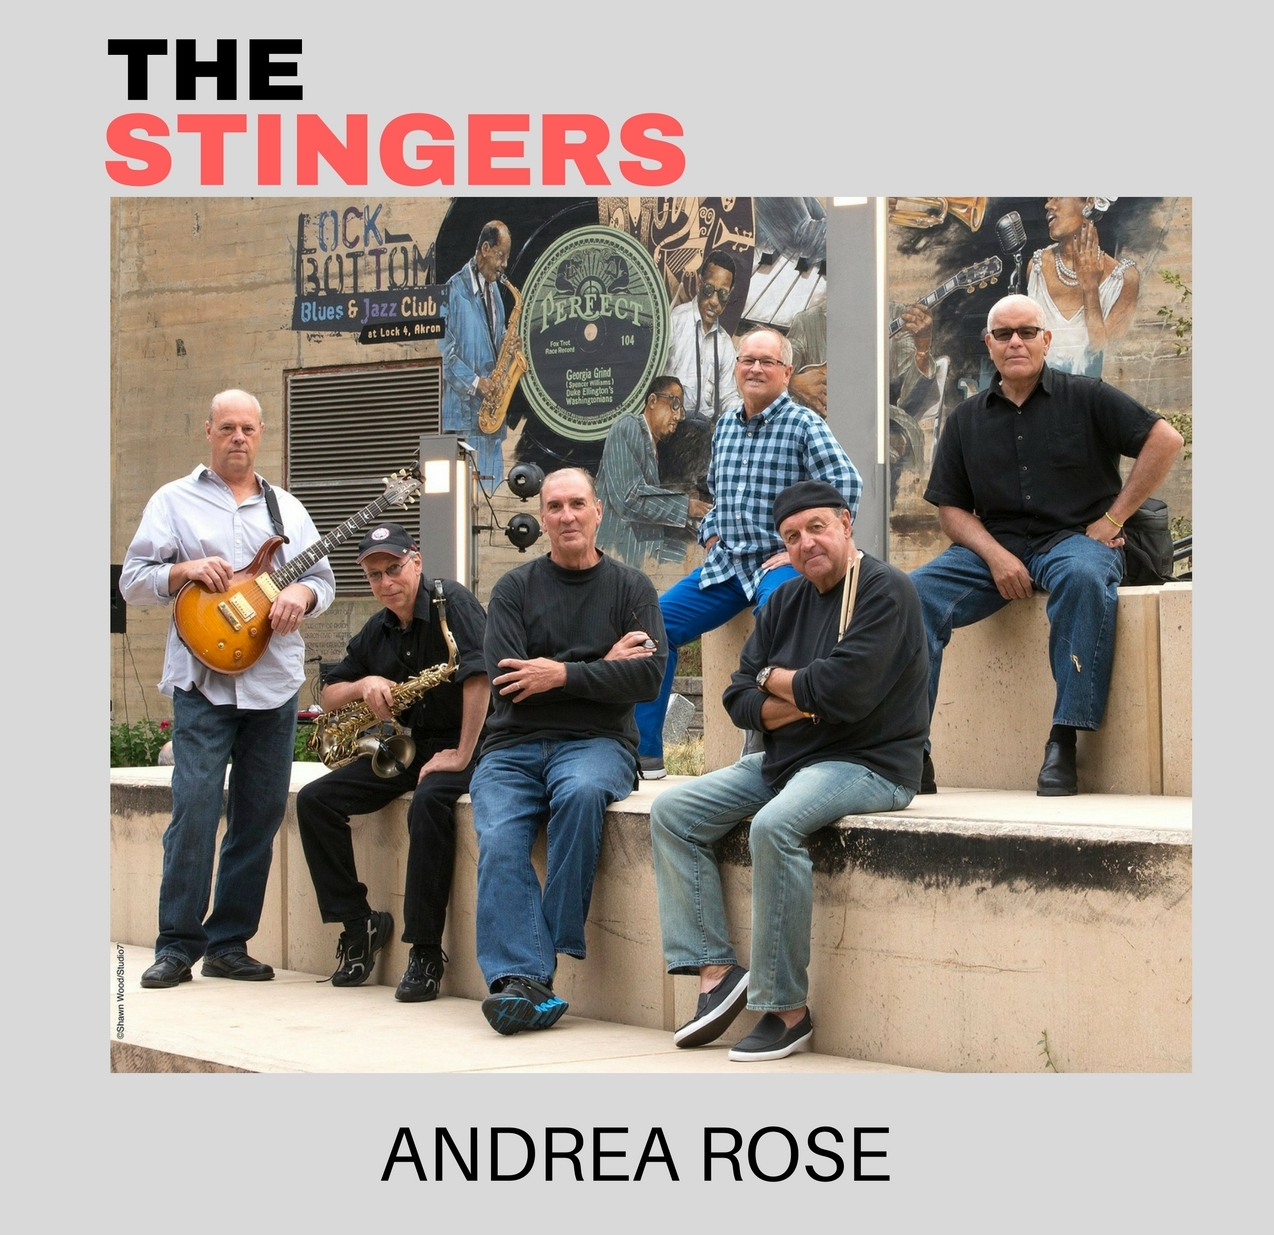 the stingers andrea rose cover